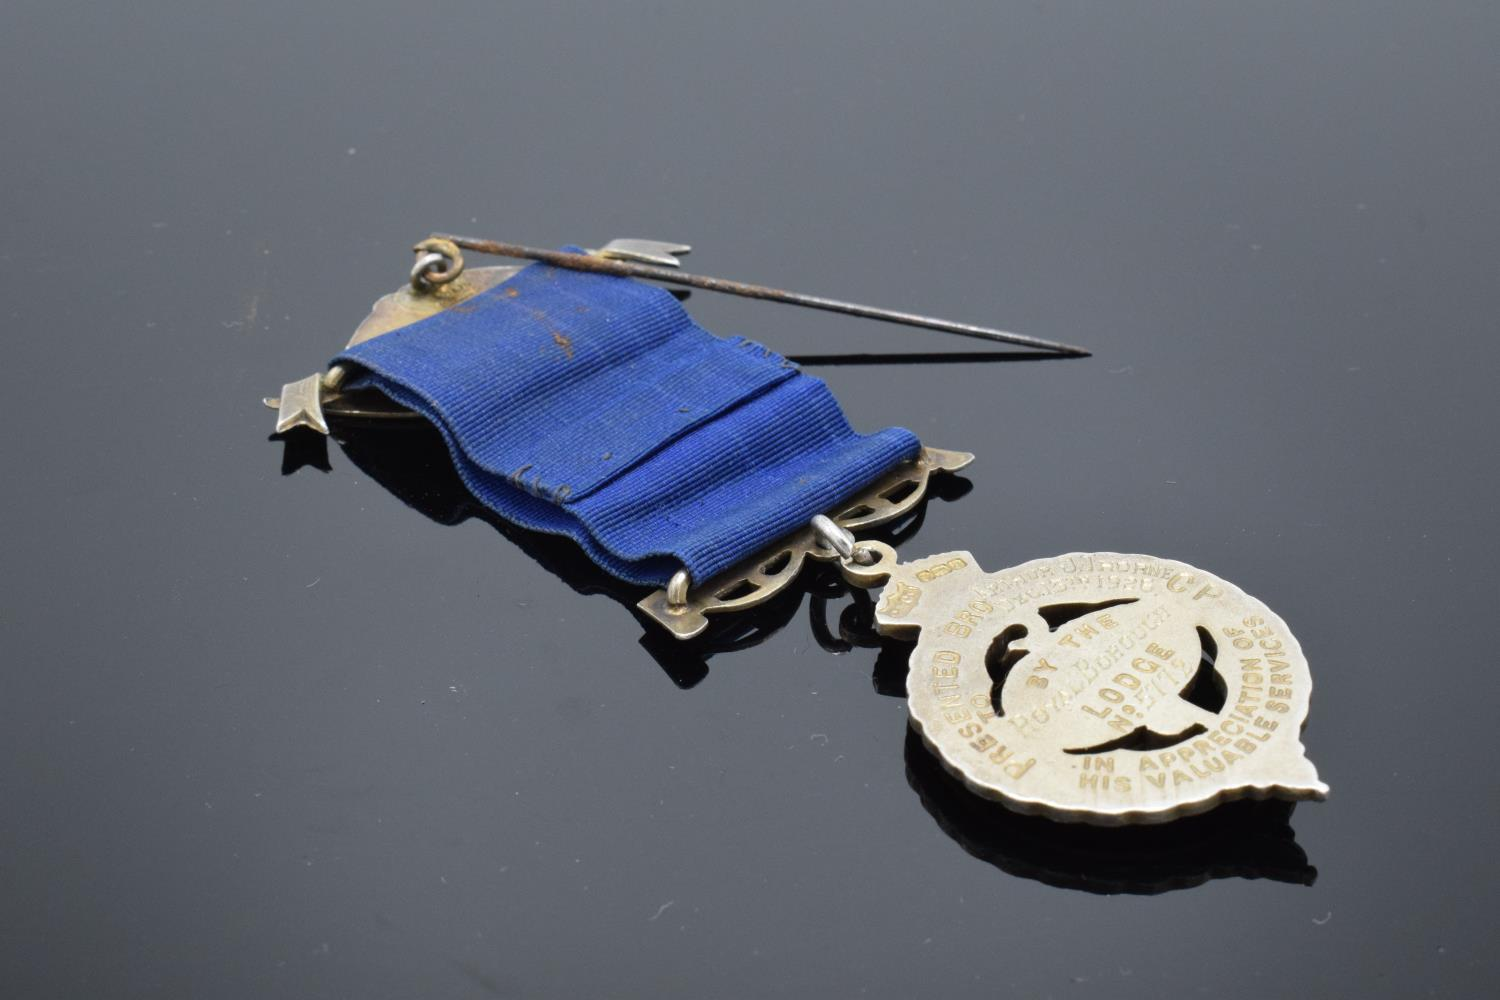 A silver medal and ribbon presented to Arthur J Thorne by the Royal Borough Lodge (GLE) Birmingham - Image 5 of 12